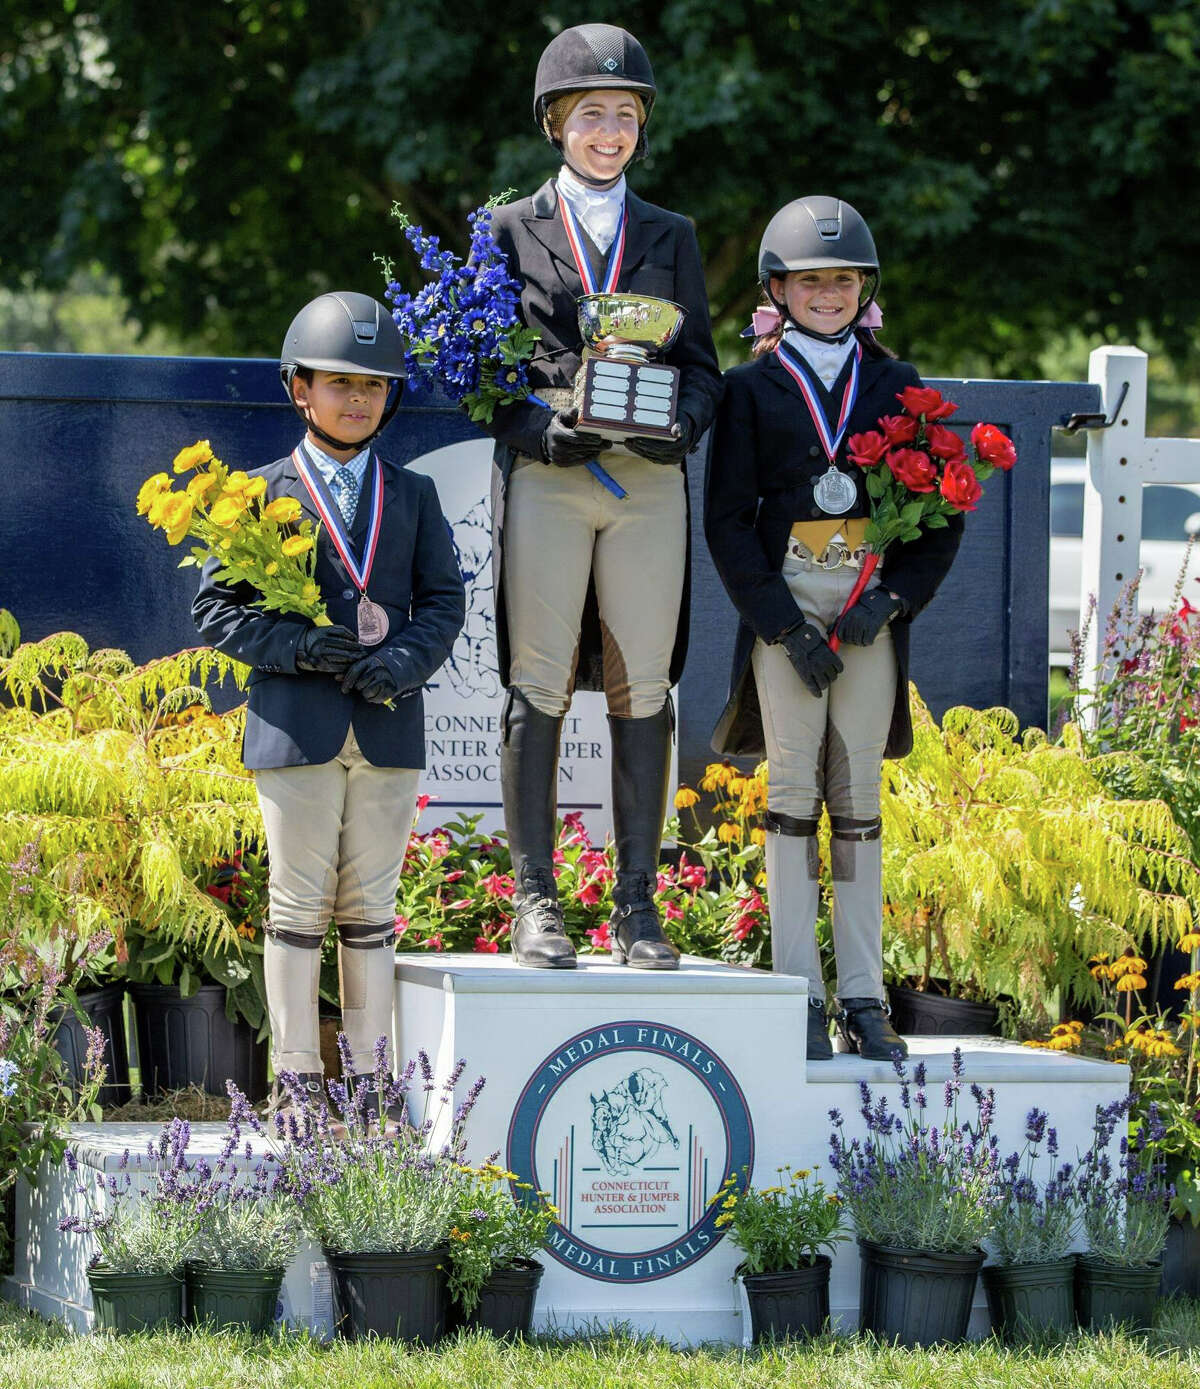 Westporter Julia Beck, center, stands atop the winner's podium after winning the CHJA Children's Hunter Pony Classic at Fairfield County Hunt Club in Westport, Connecticut last weekend.